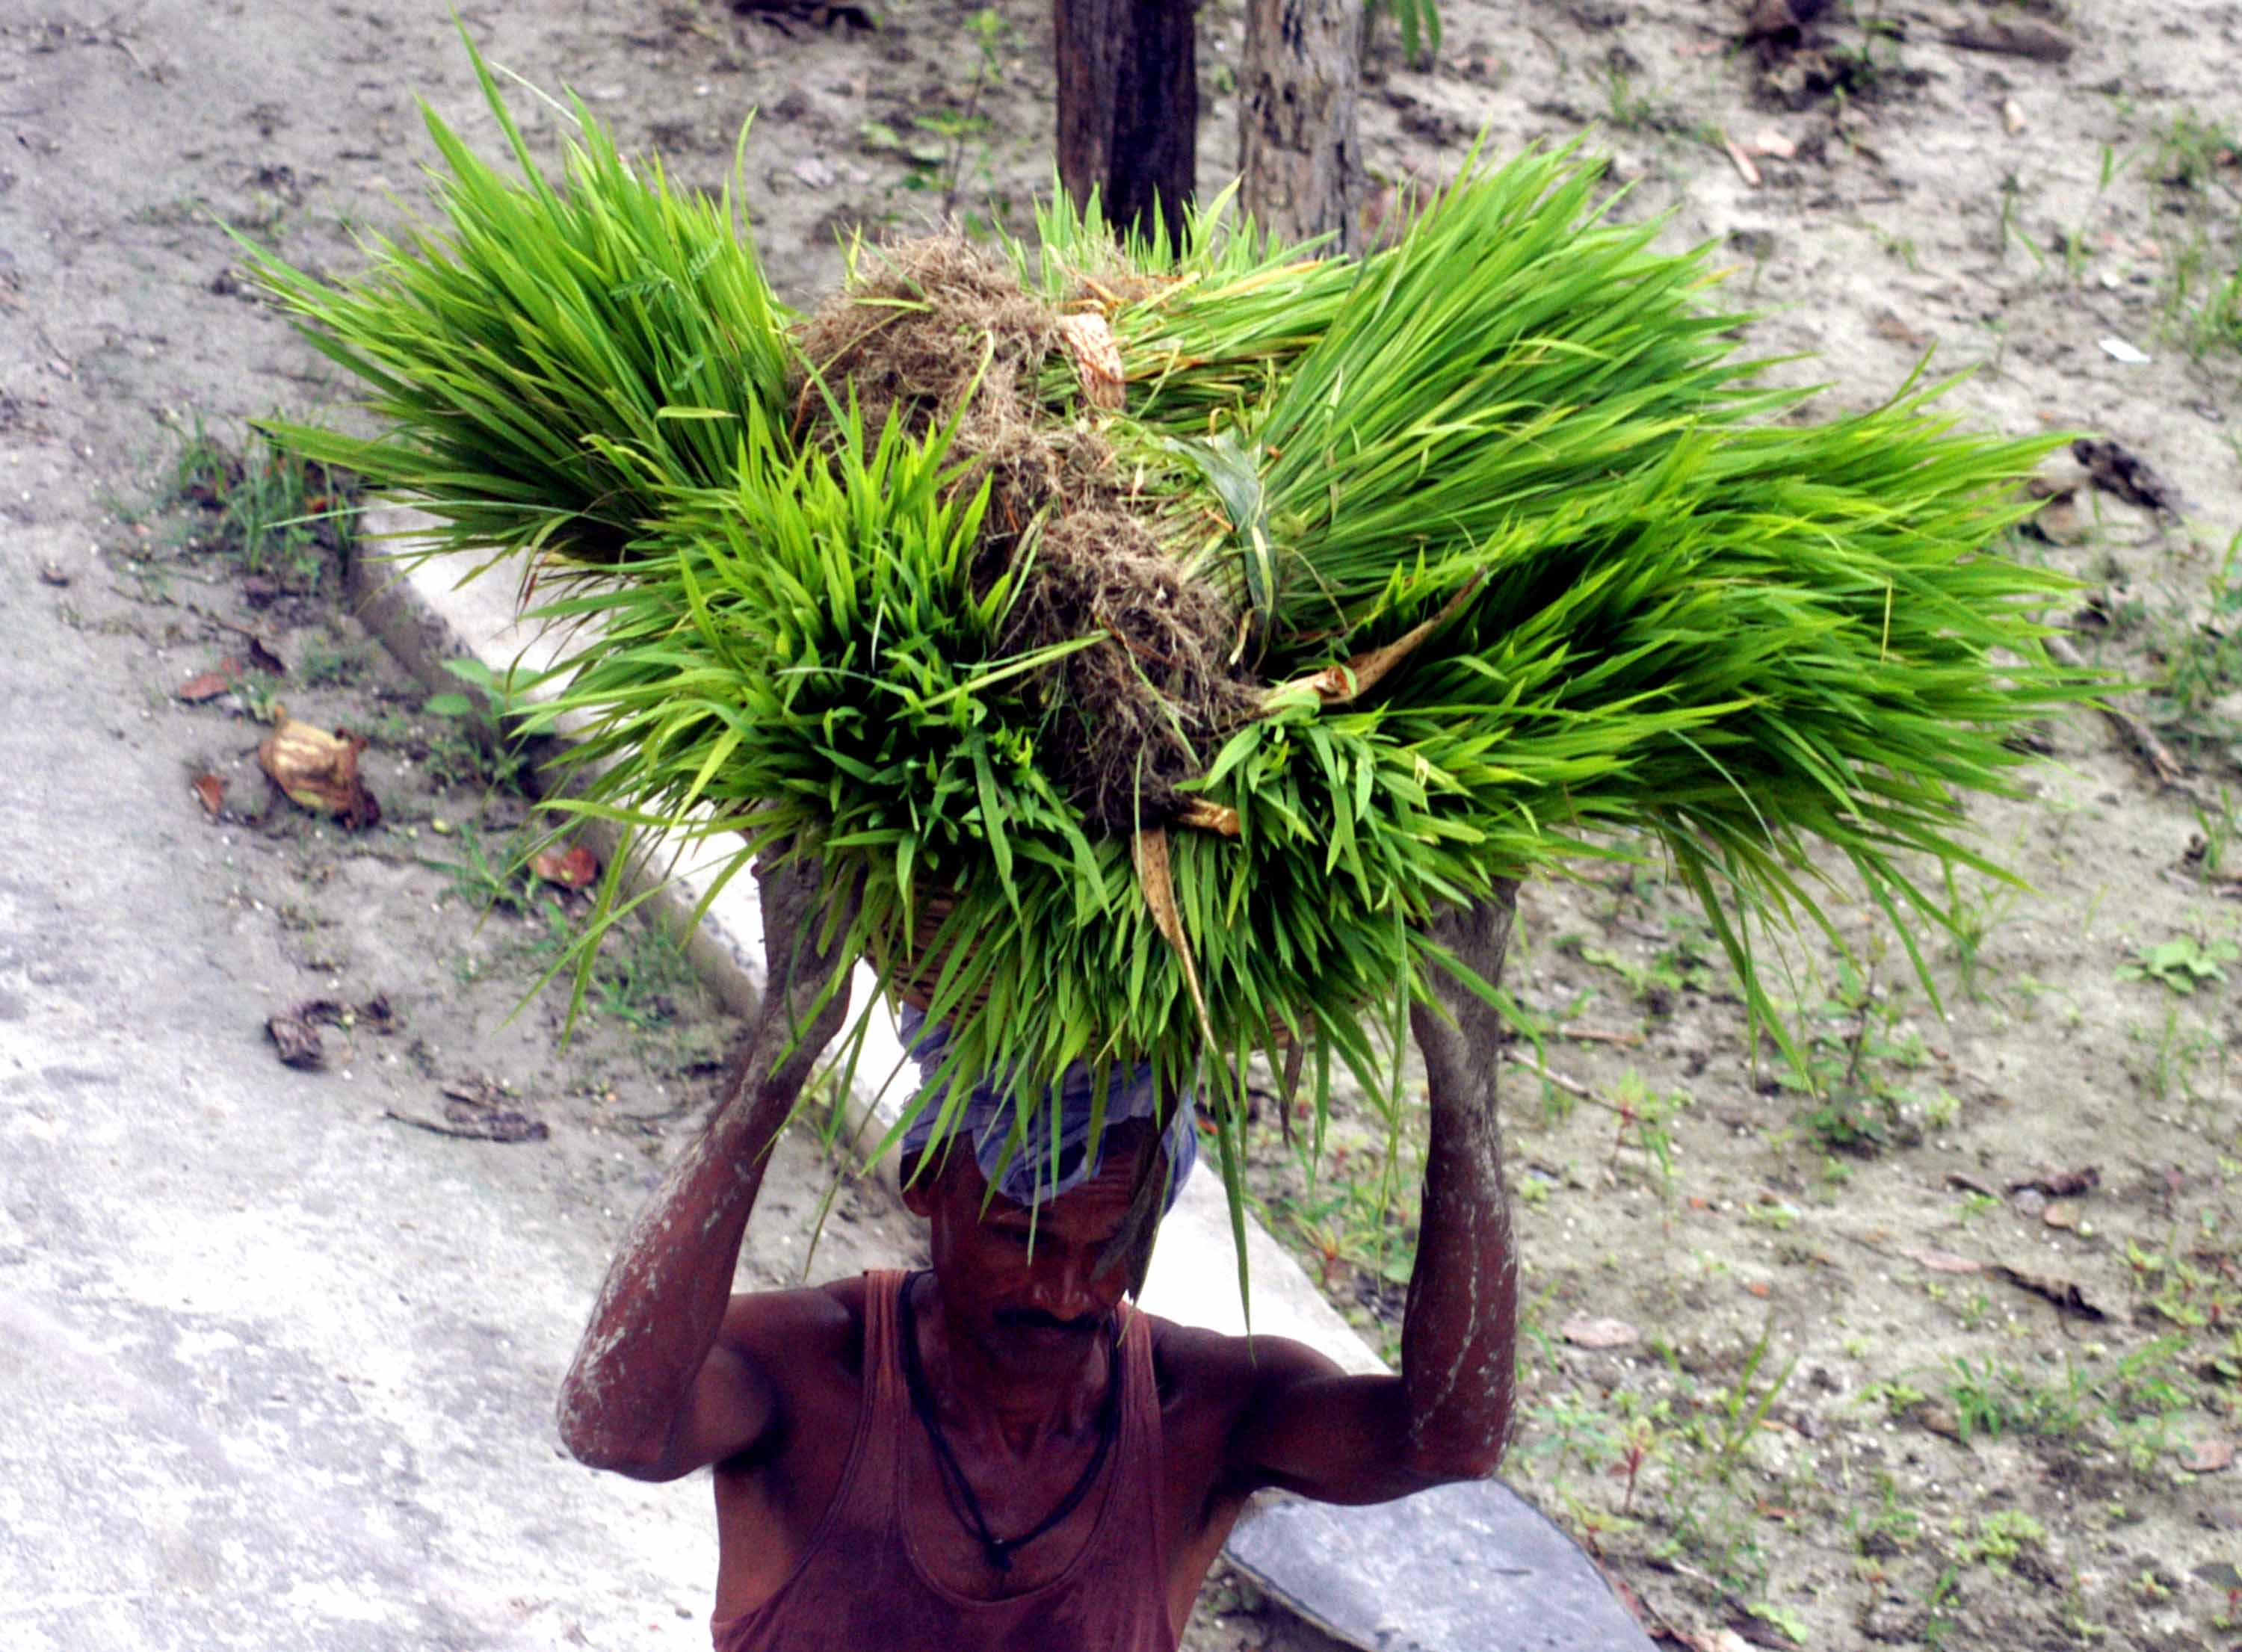 No Azaadi for Dalit agricultural labourers